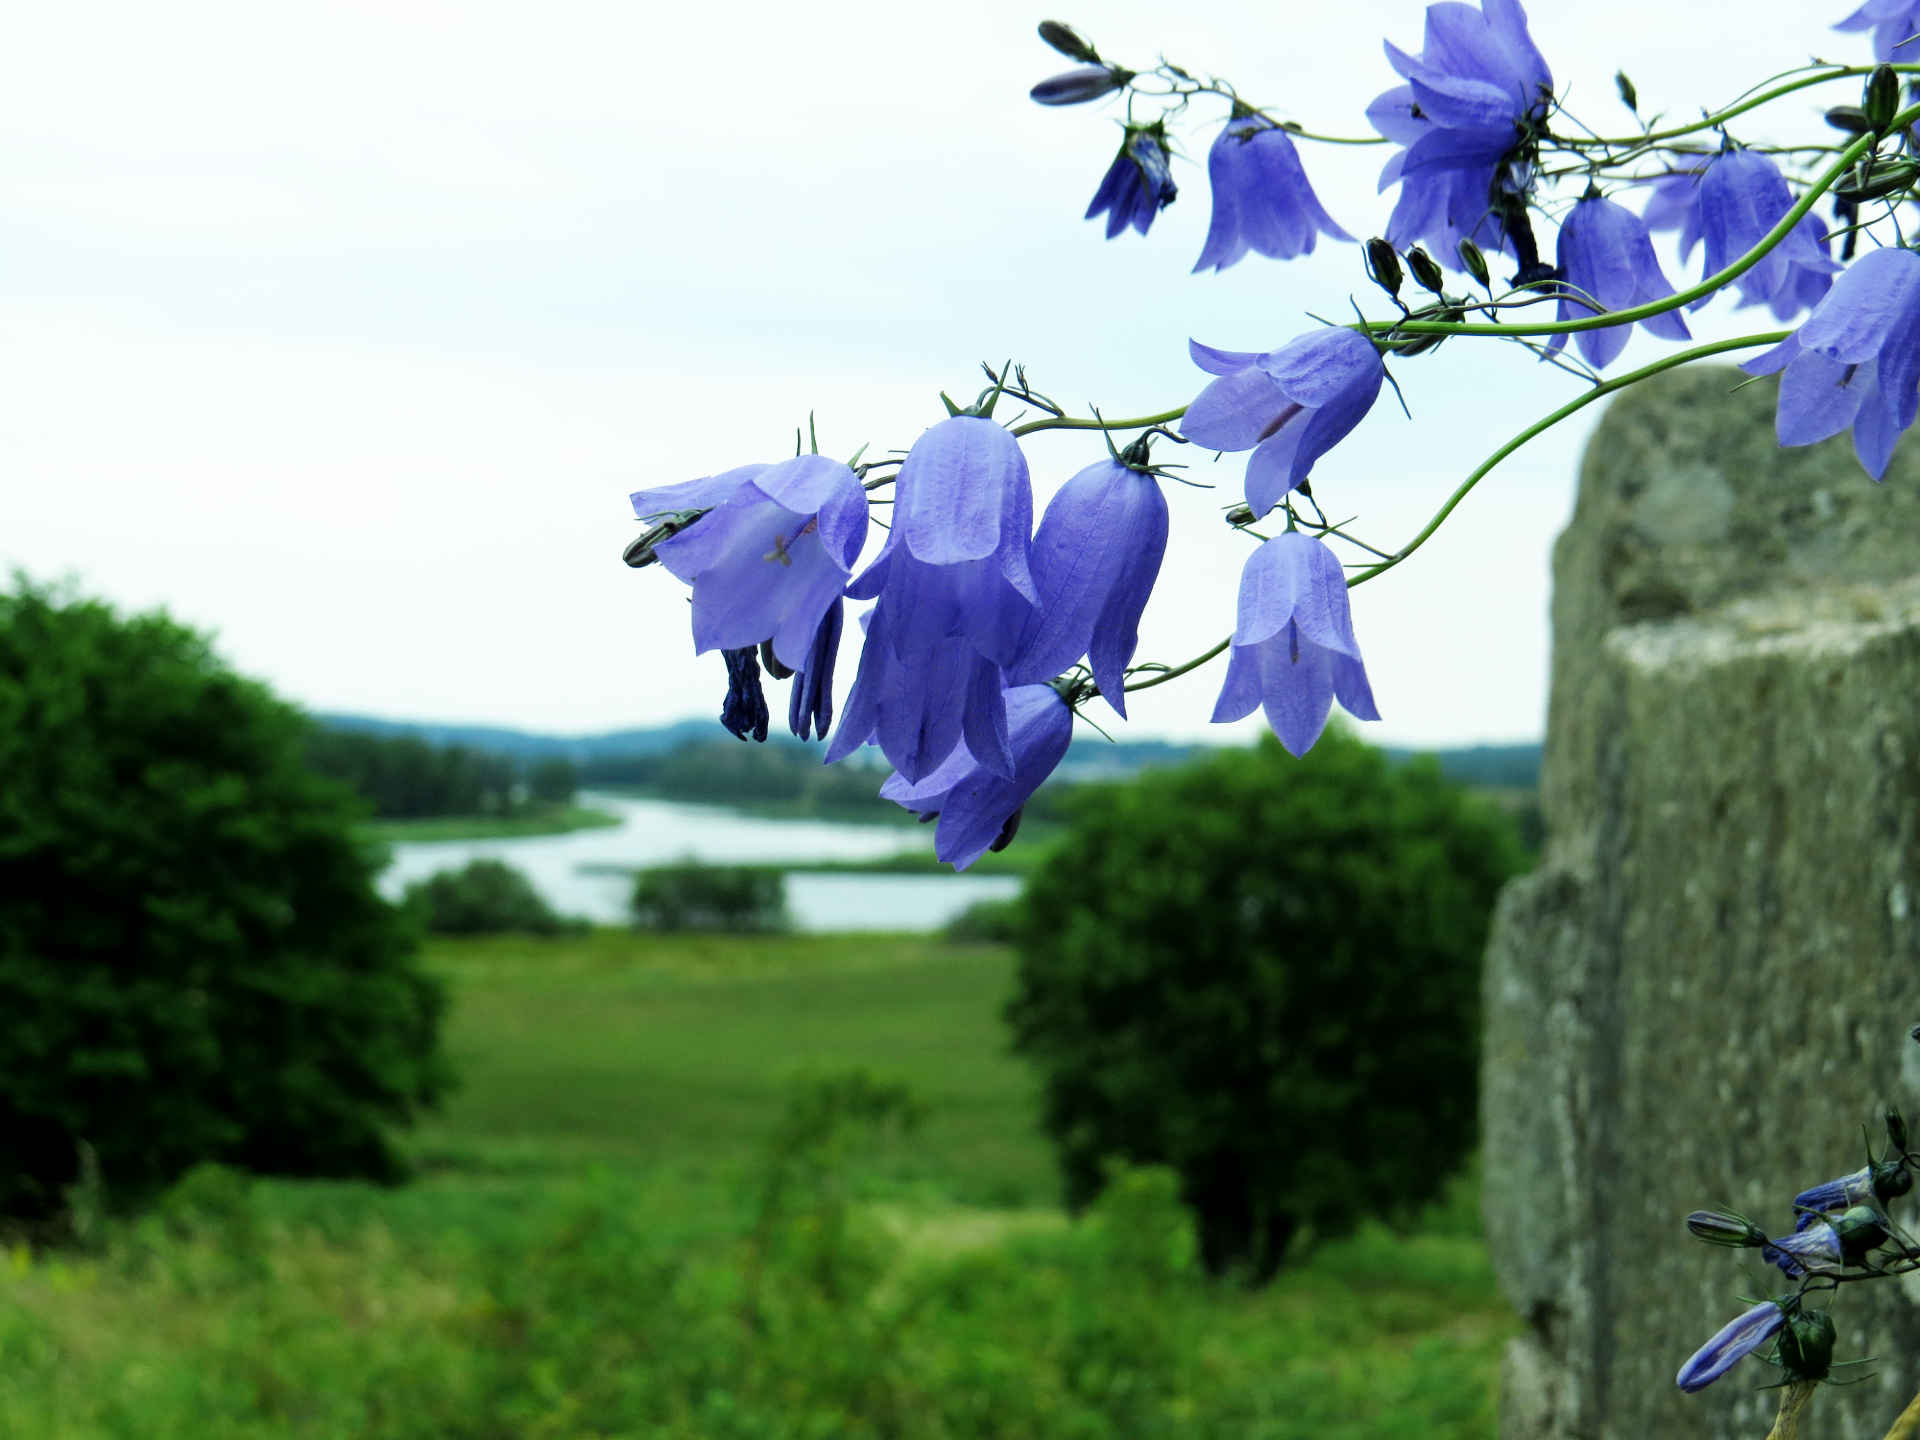 Harebells at Ragnhildsholmen